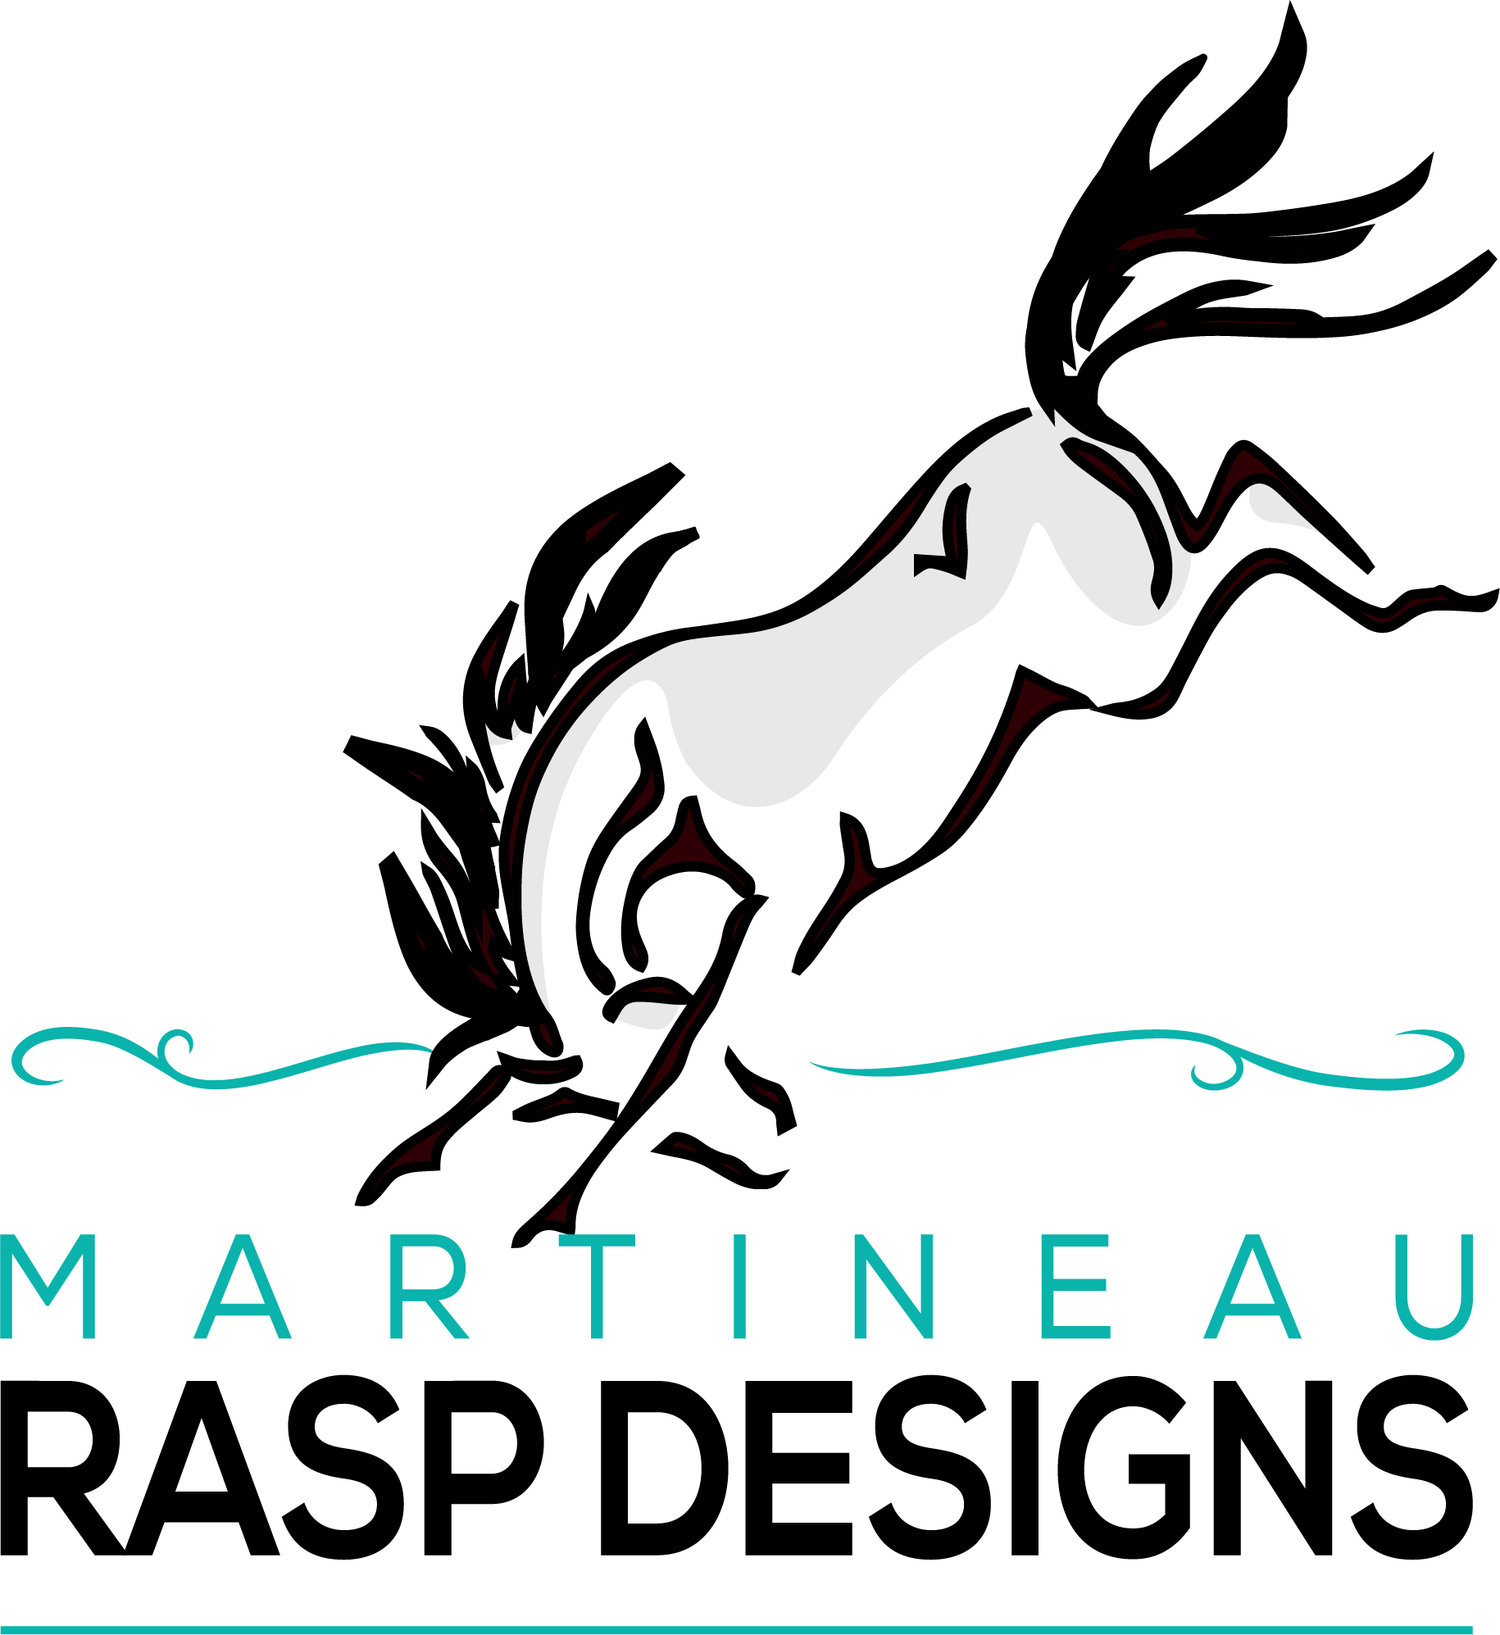 MARTINEAU RASP DESIGNS